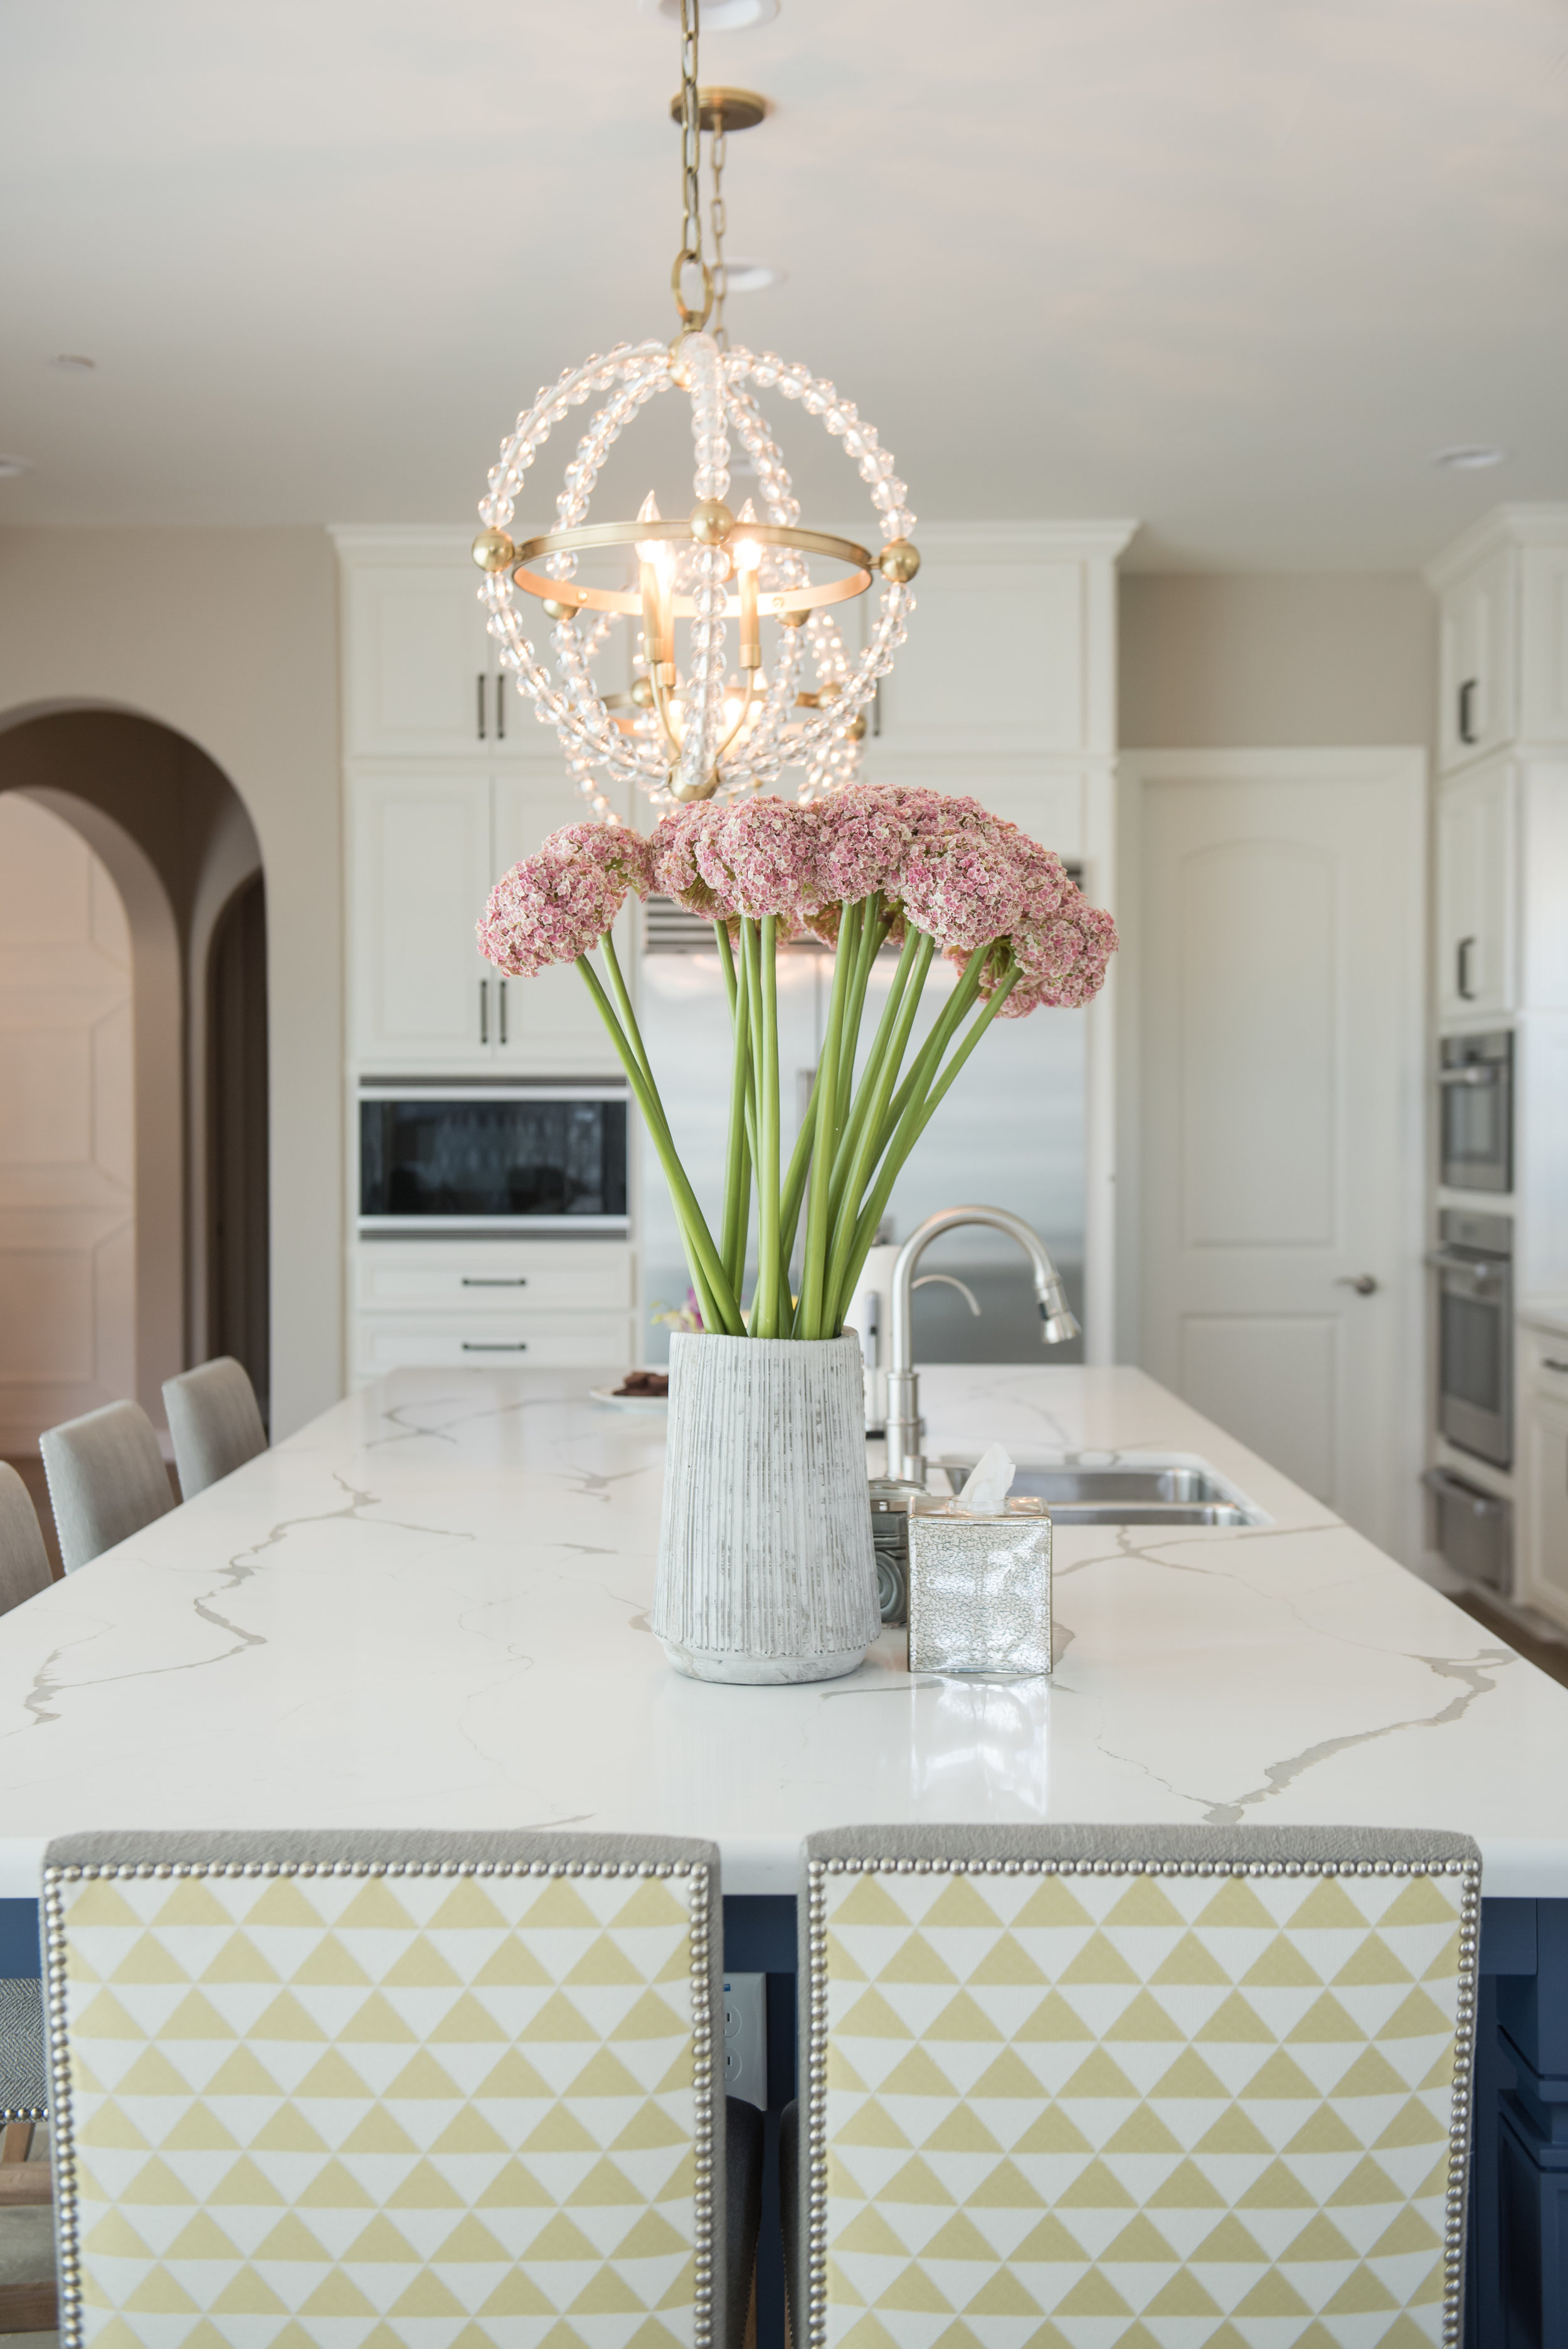 9 Brass+Chandelier+Transitional+Kitchen+Scottsdale+Accessories+Flowers+Pink.jpg